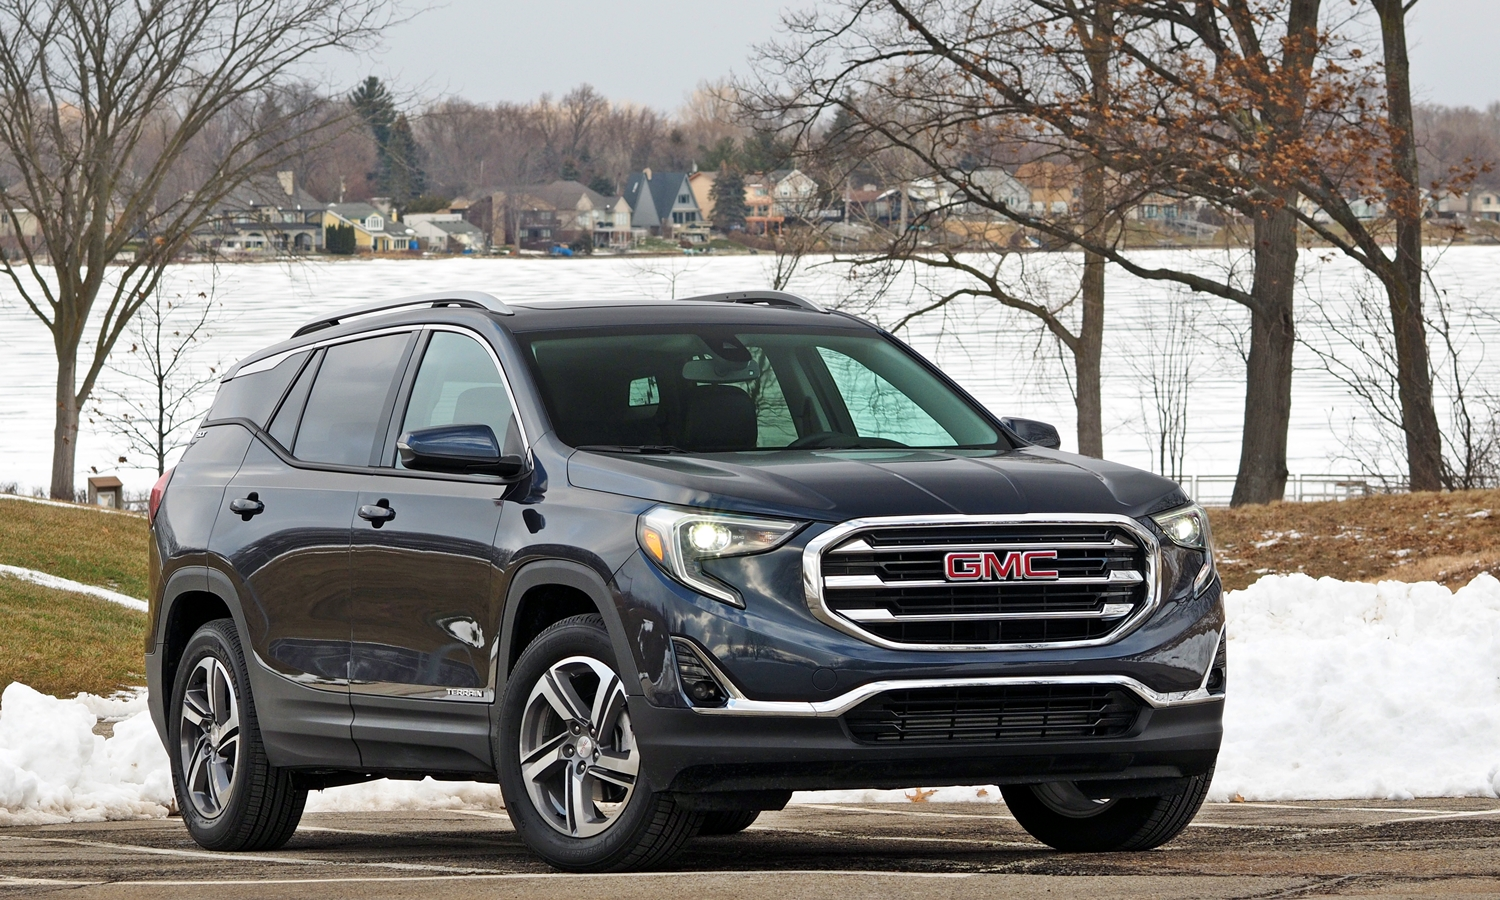 2018 gmc terrain pros and cons at truedelta 2018 gmc terrain slt diesel review by michael karesh. Black Bedroom Furniture Sets. Home Design Ideas